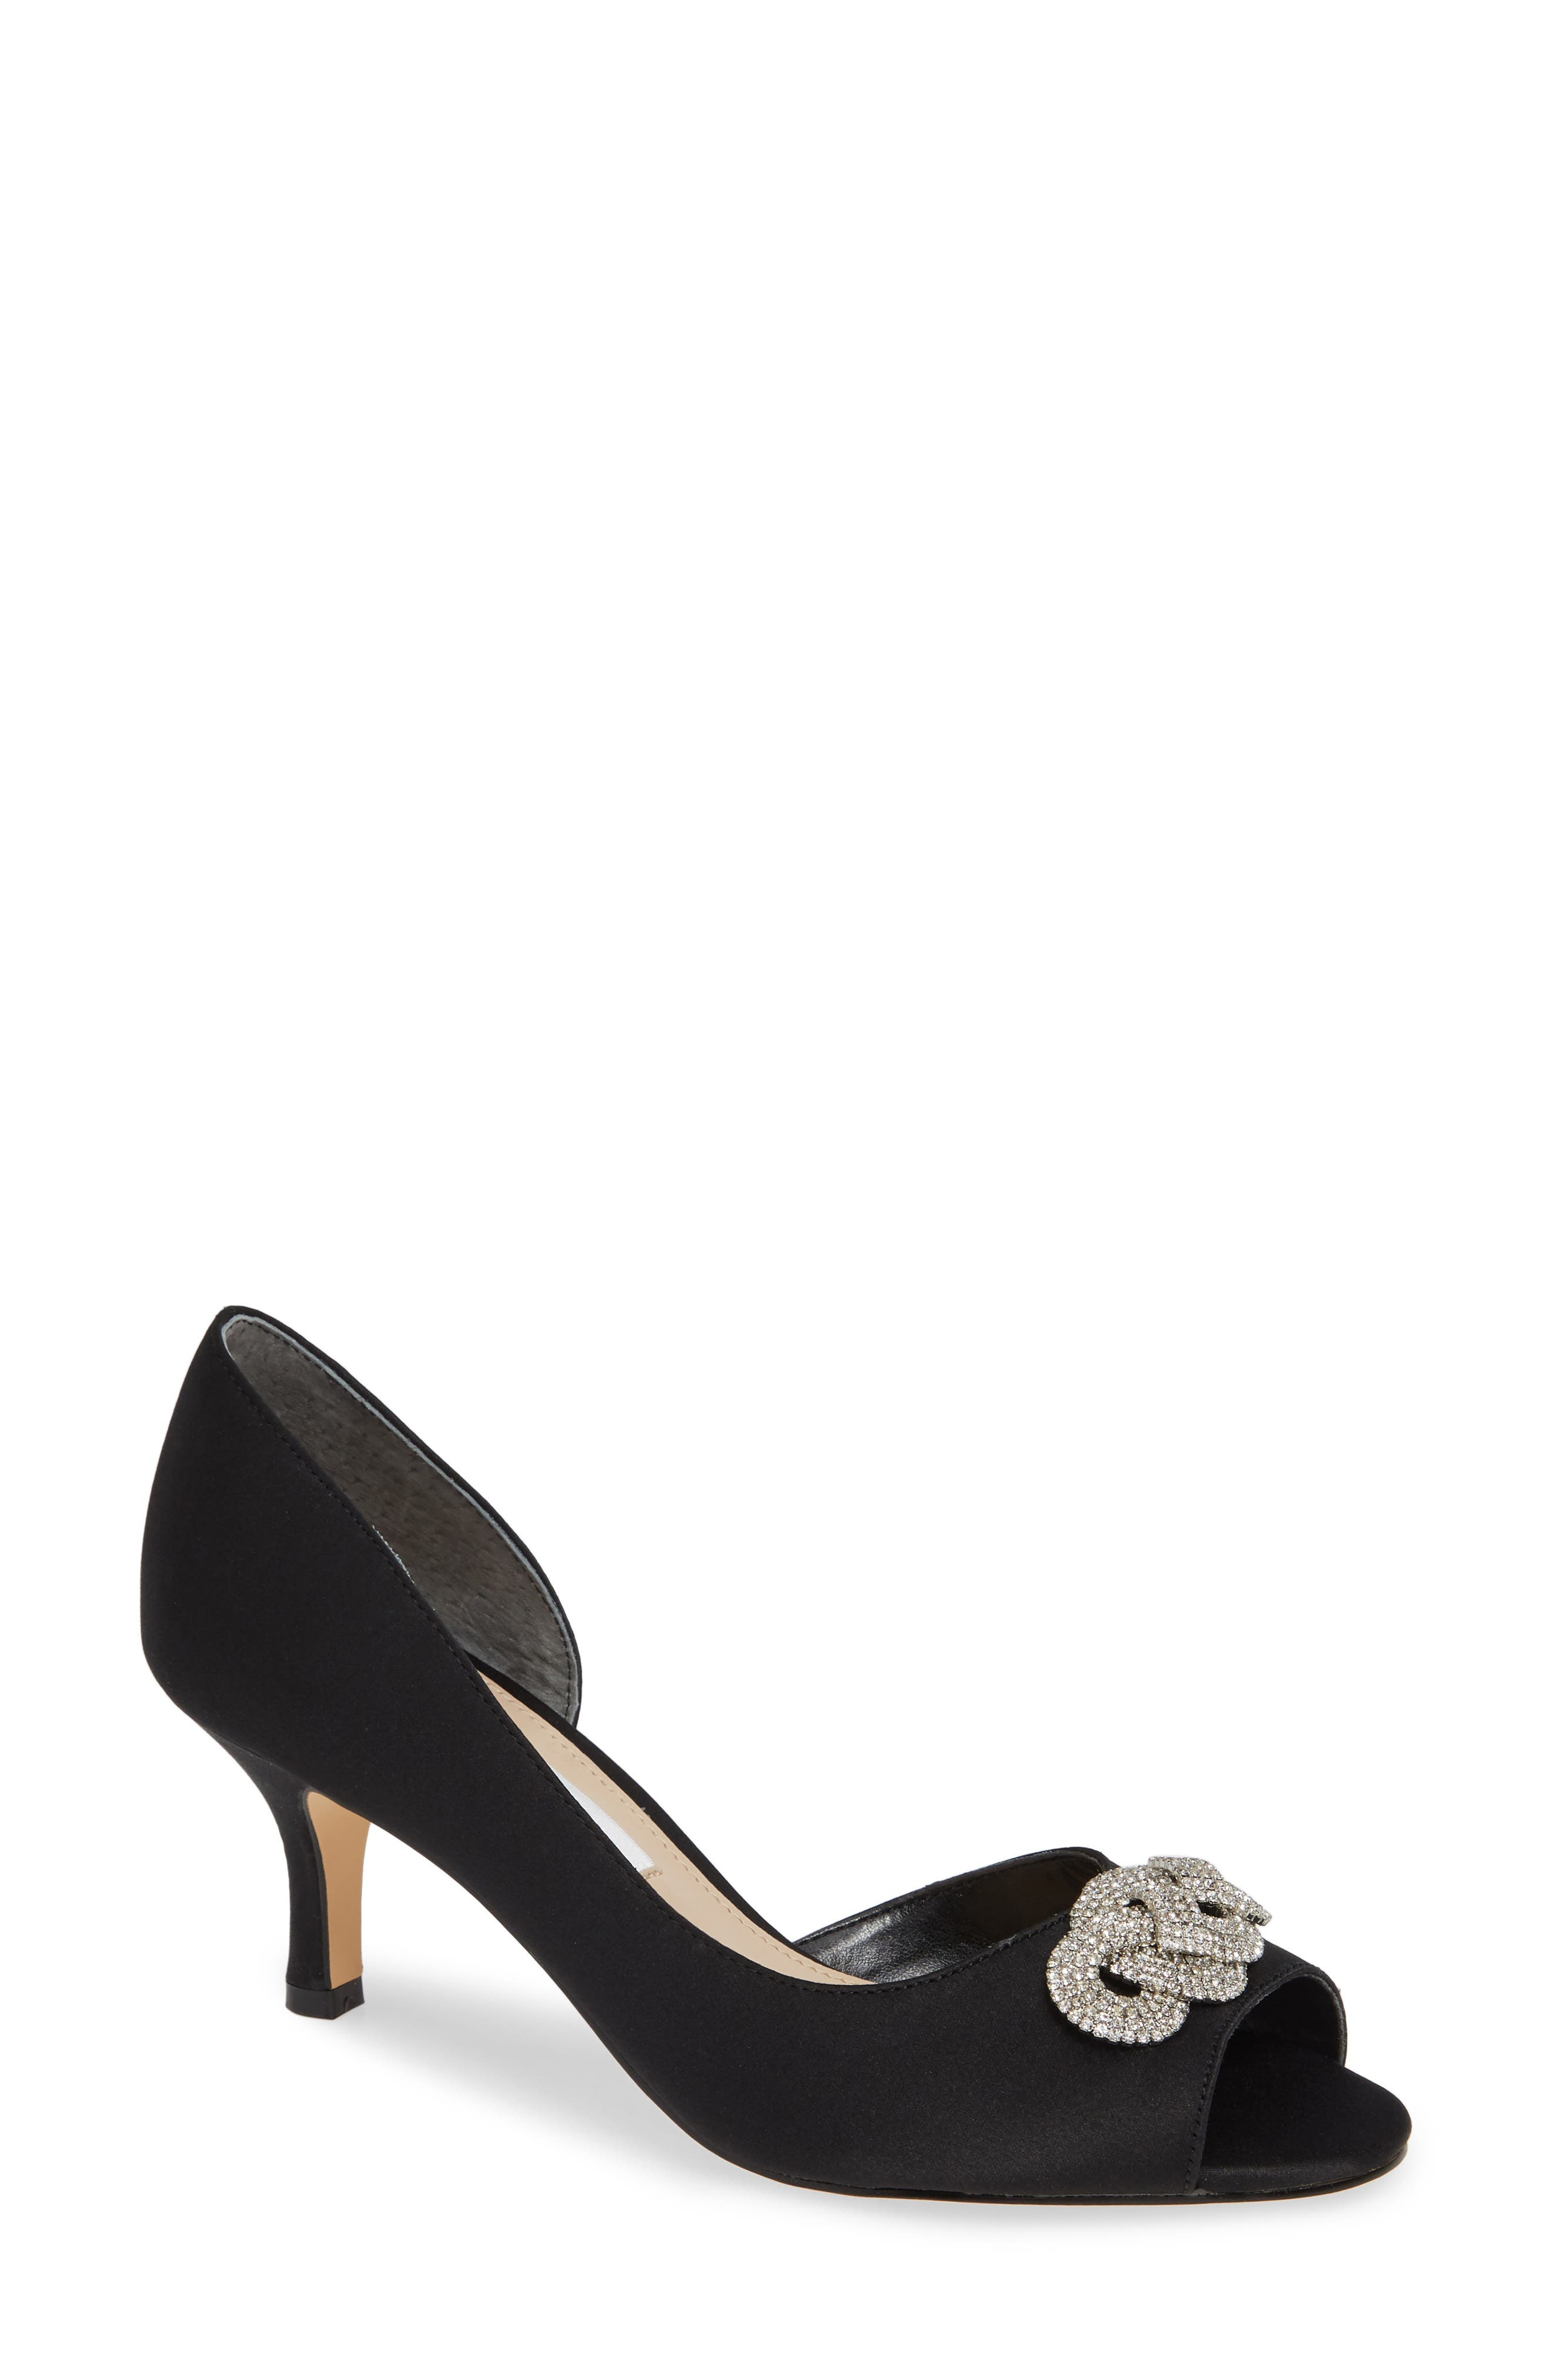 Madolyn Embellished Open Toe Pump,                             Main thumbnail 1, color,                             BLACK SATIN